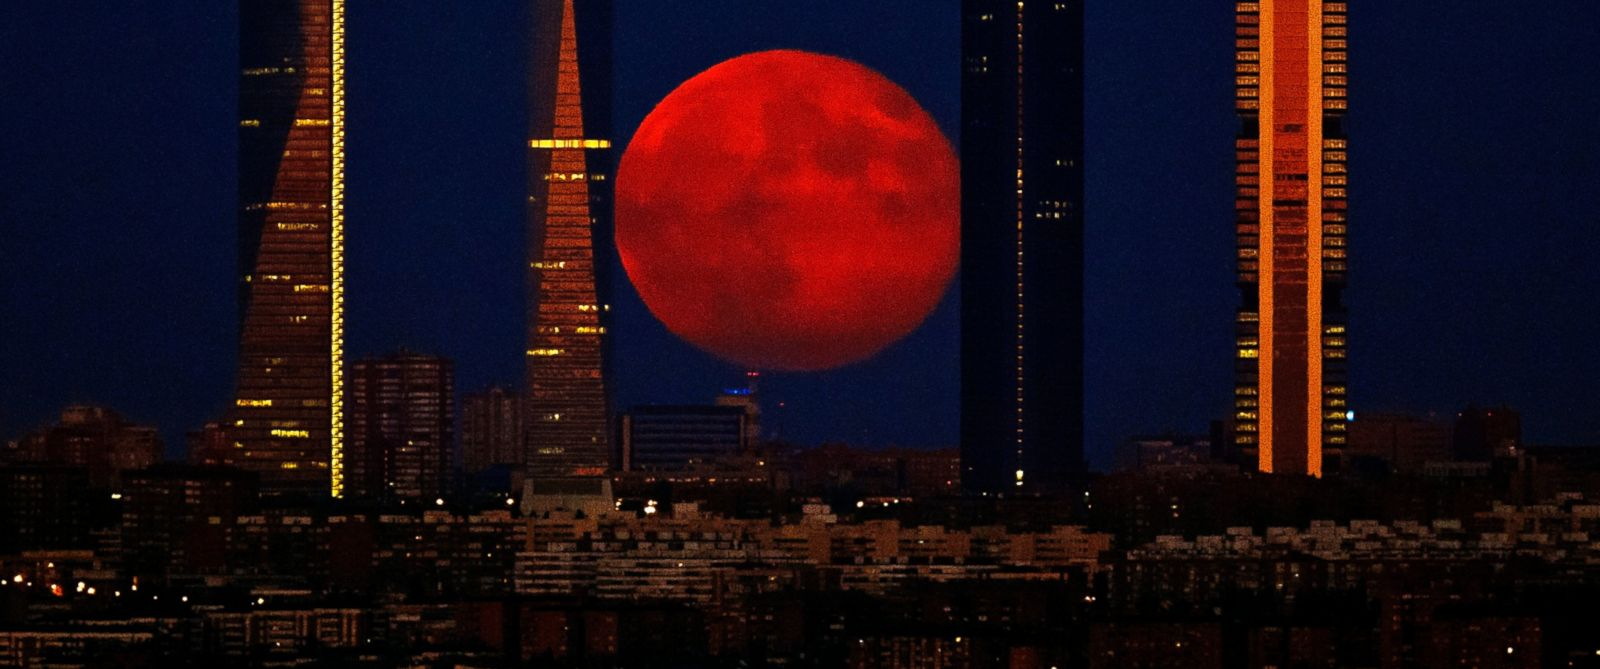 PHOTO: The moon rises in the sky as seen through the Four Towers, or Cuatro Torres Business Area, in Madrid, Spain on Aug. 11, 2014.